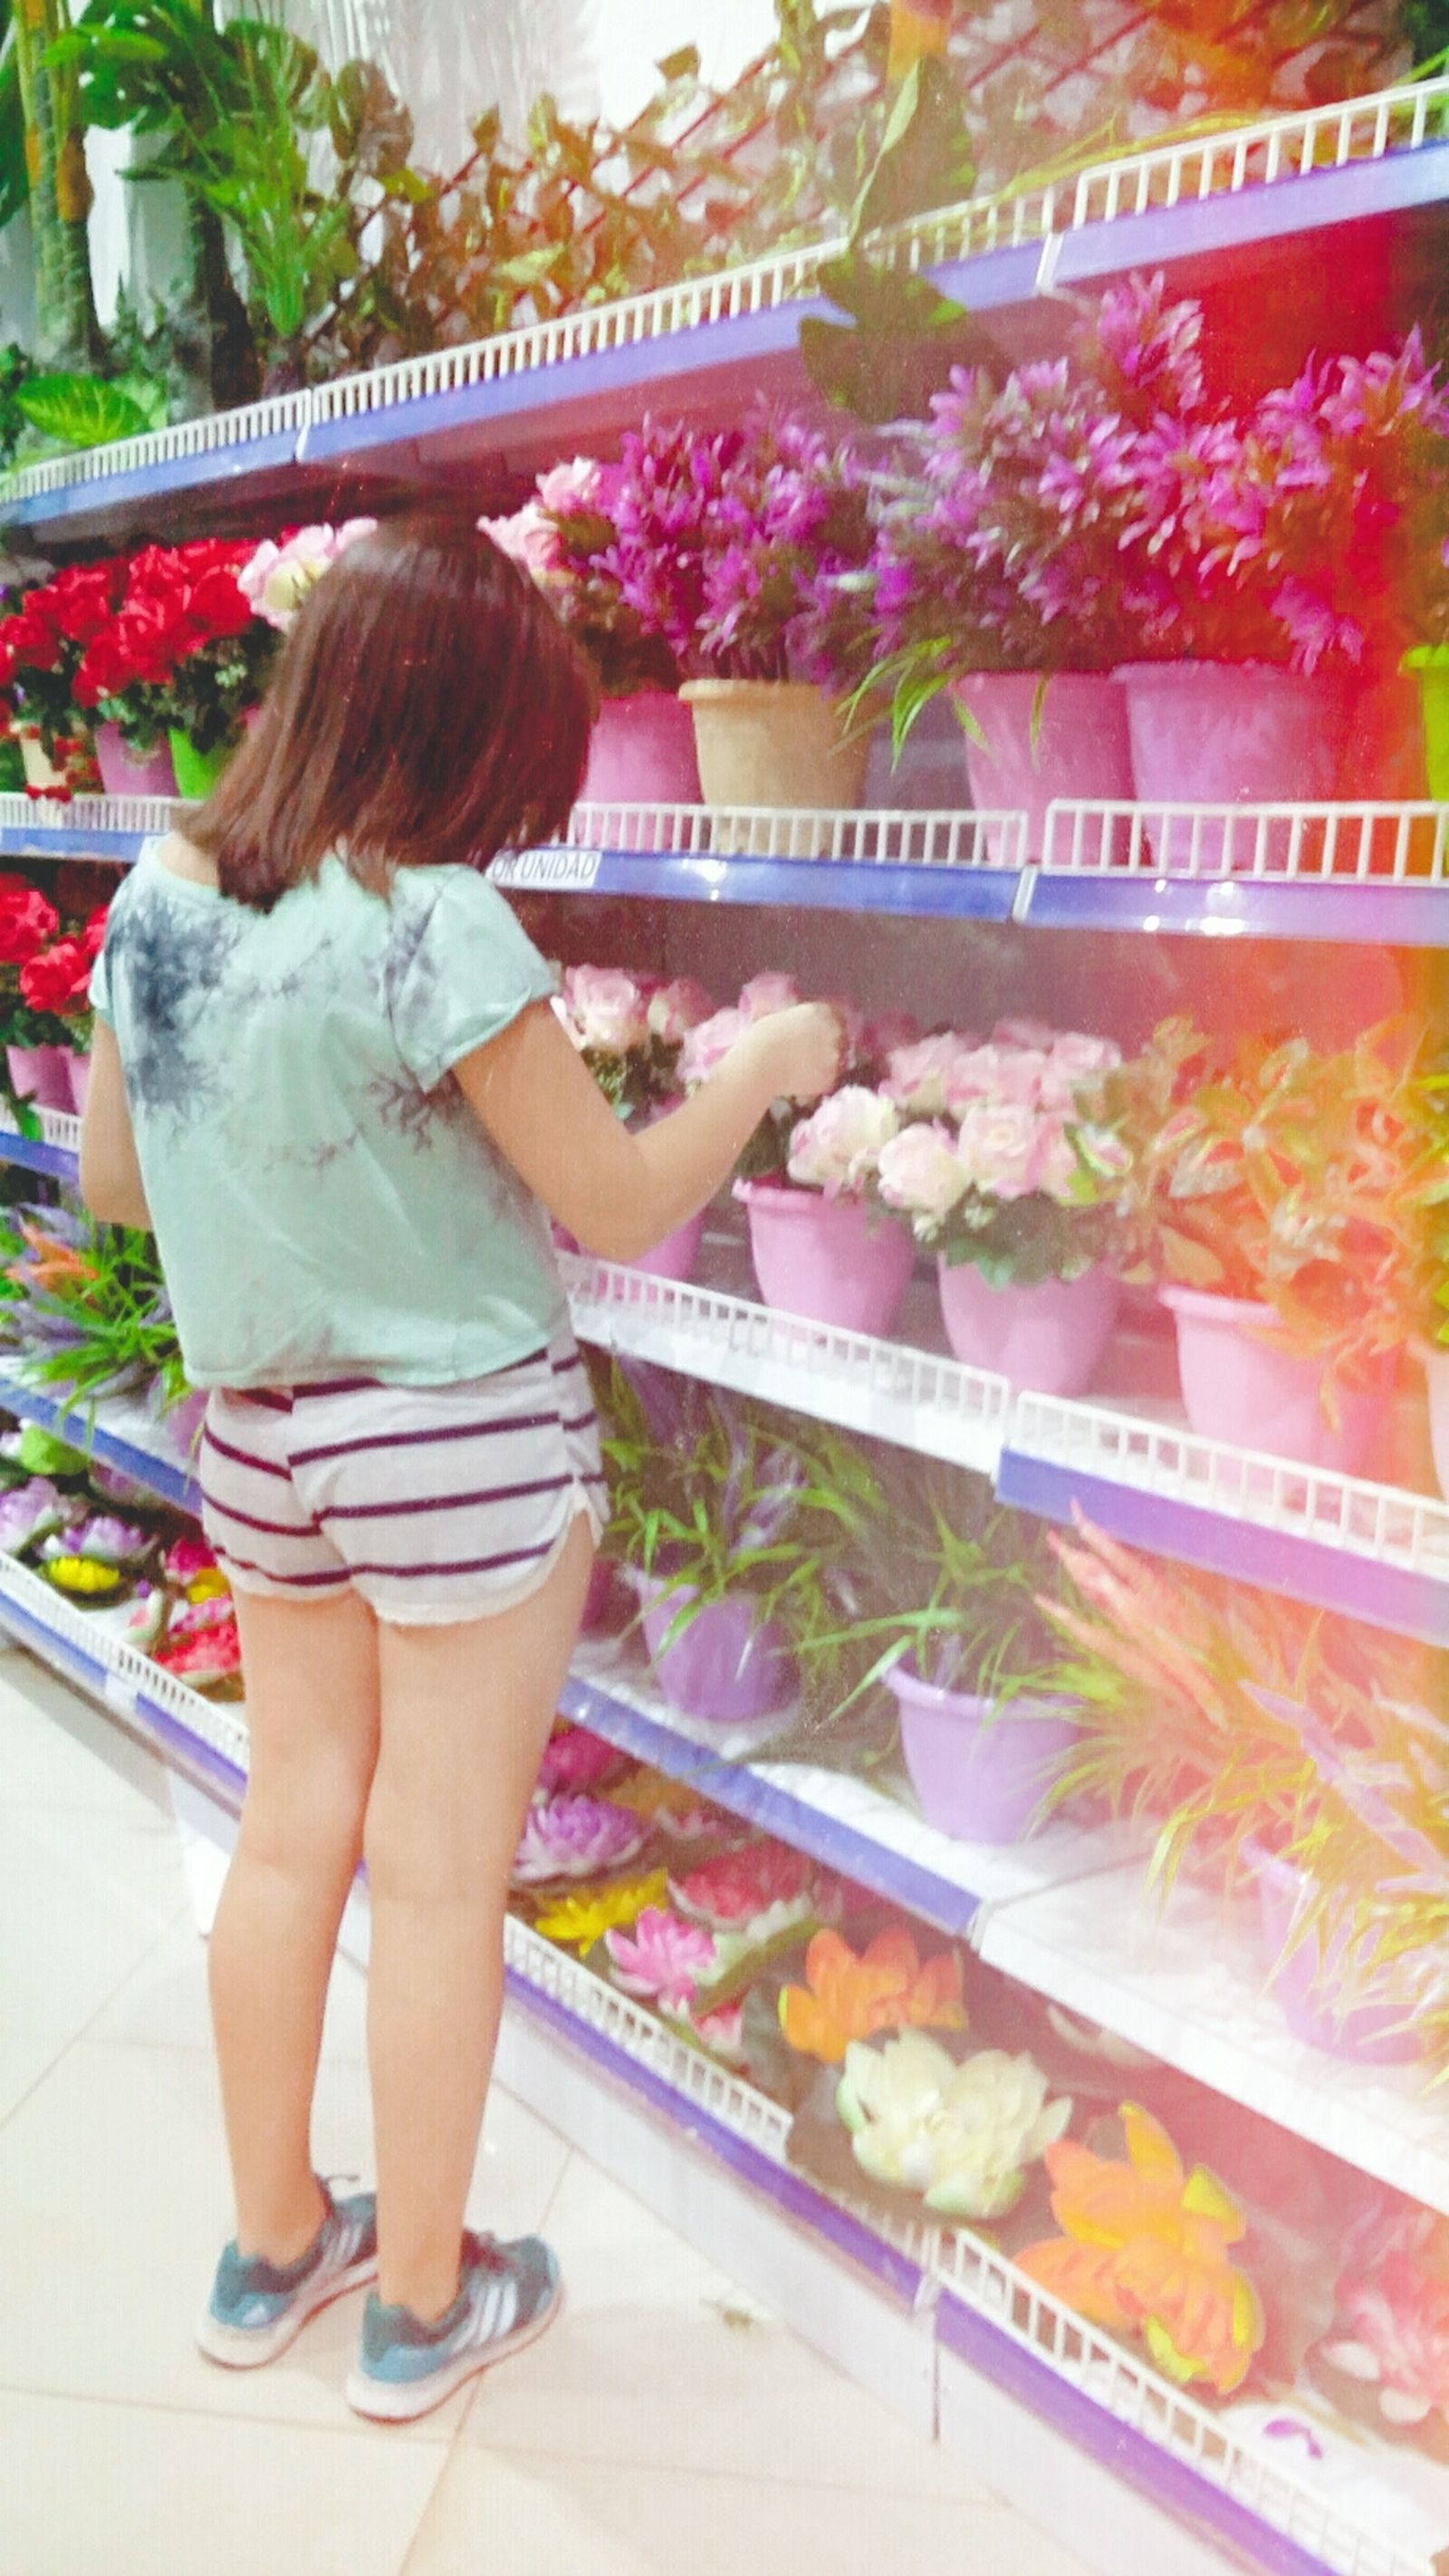 My little sister. Supermarket One Person Market Lifestyles Groceries Store Flowers Women Colorful Choice Argentina Photography First Eyeem Photo Outdoors Paraguayfotografia Day Efectos Fotograficos. Girl Power Girl Storephotography